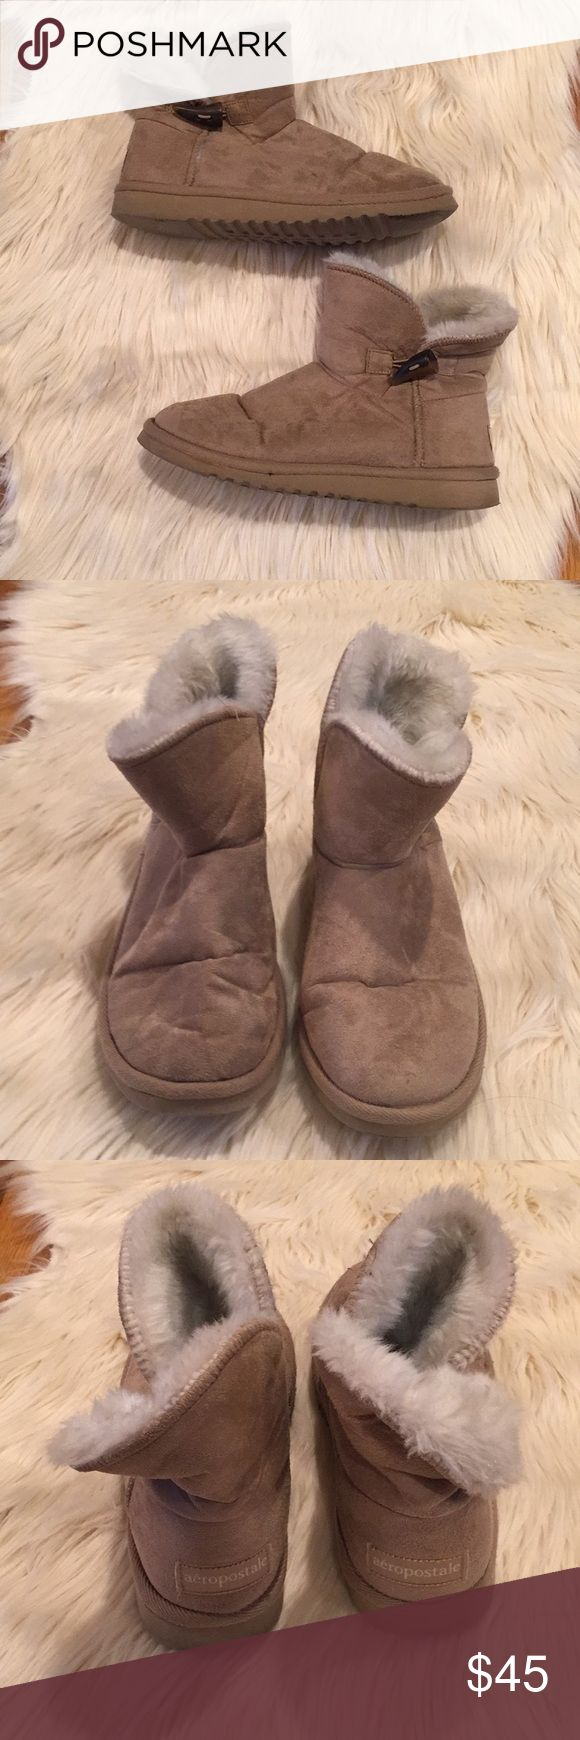 ❗️FINAL PRICE❗️Aeropostale- Brown Fur Boots Gently Used, kept in good condition minor signs of wear on bottom of soles from normal wear. Ankle Fur Brown Boots. Size 8 side brown Buckle. Very comfy & have much life still left in them! Aeropostale Shoes Ankle Boots & Booties